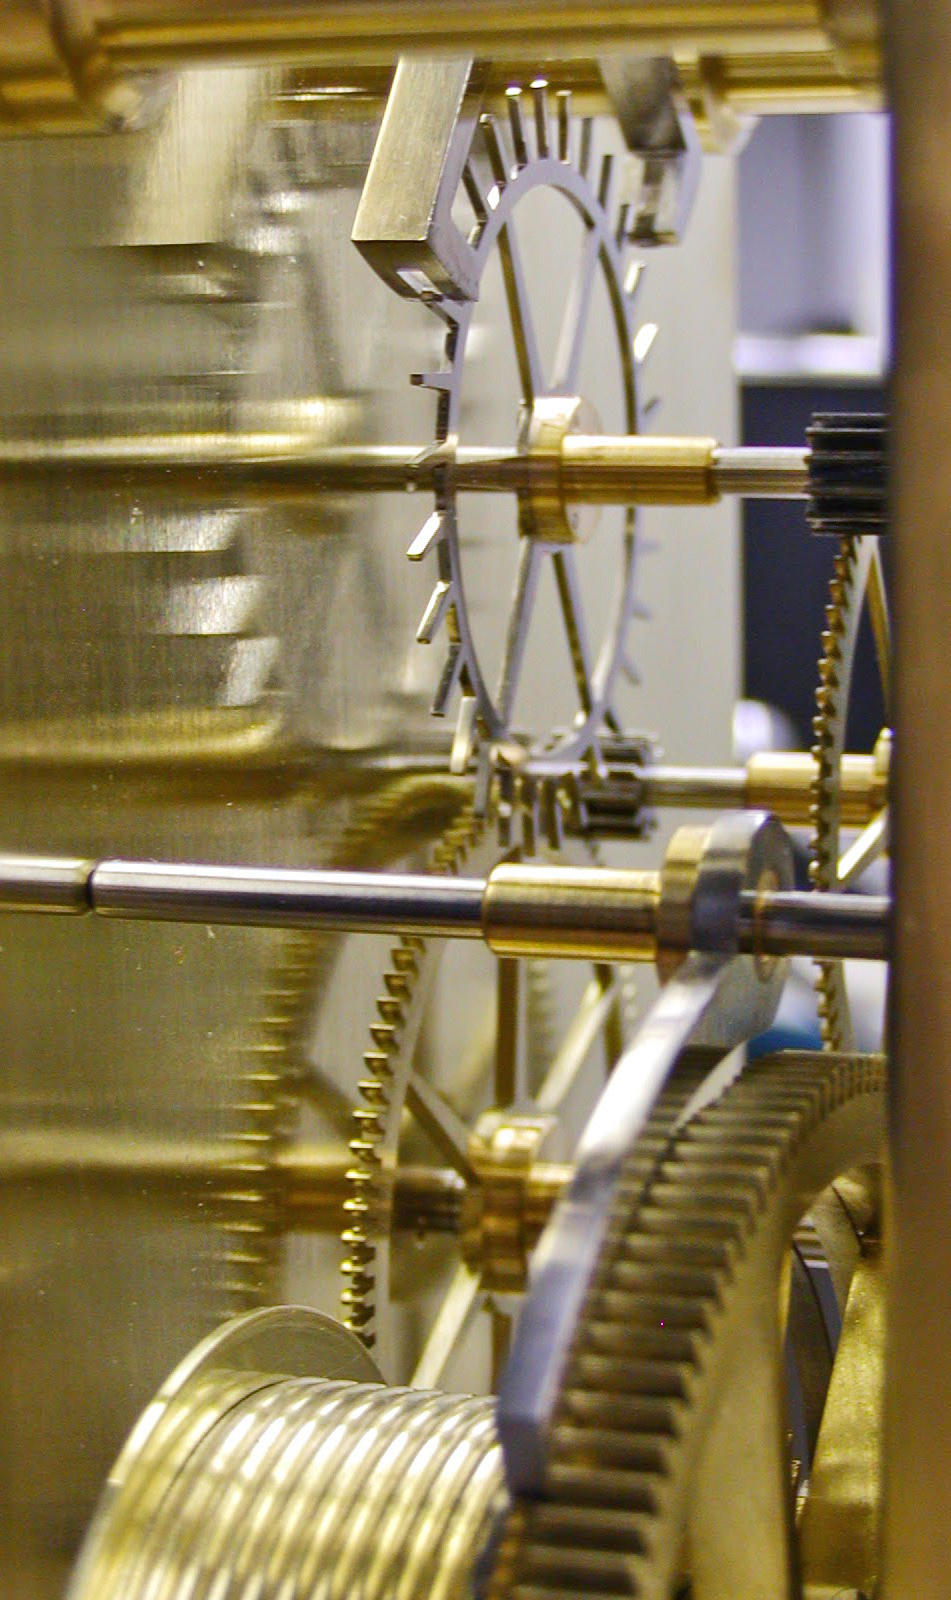 Courtesy of the Arcadian Clock Co.  The Arcadian R Astronomical Regulator, Erika Johnson (under the guidance of David Munro)